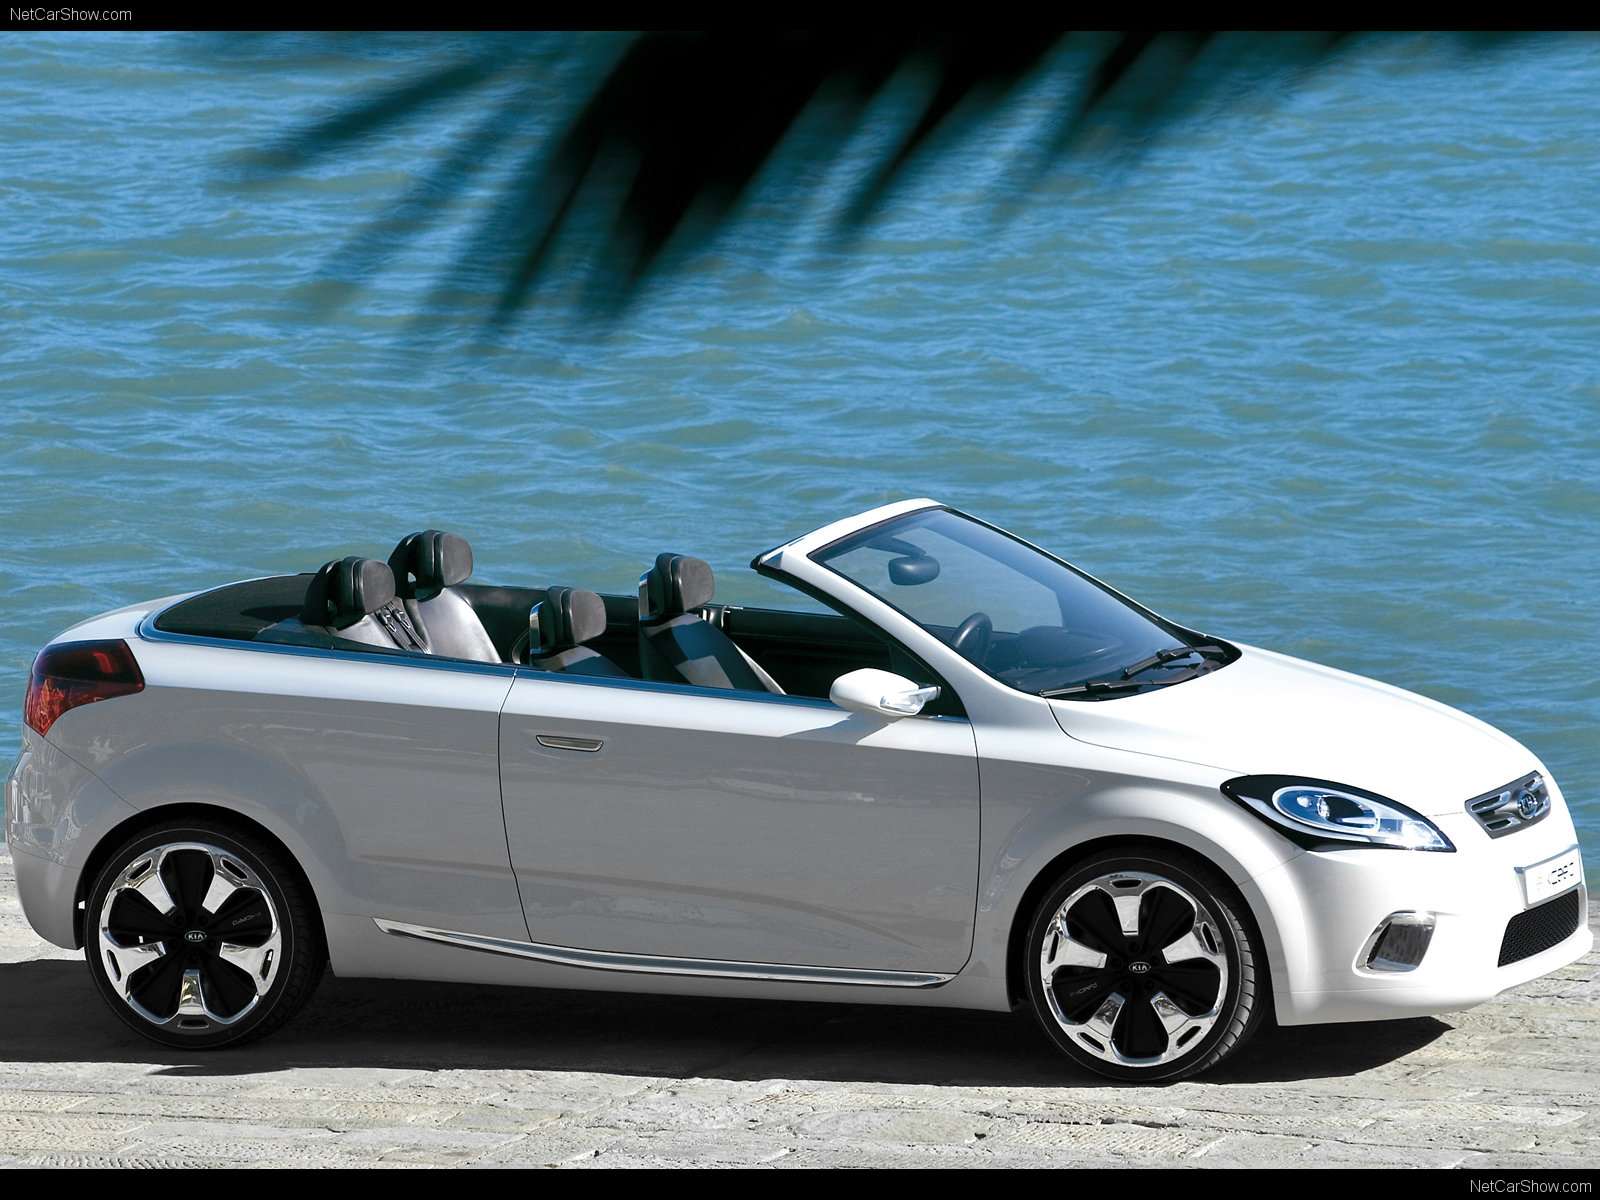 kia ex cee d cabrio photos photogallery with 2 pics. Black Bedroom Furniture Sets. Home Design Ideas